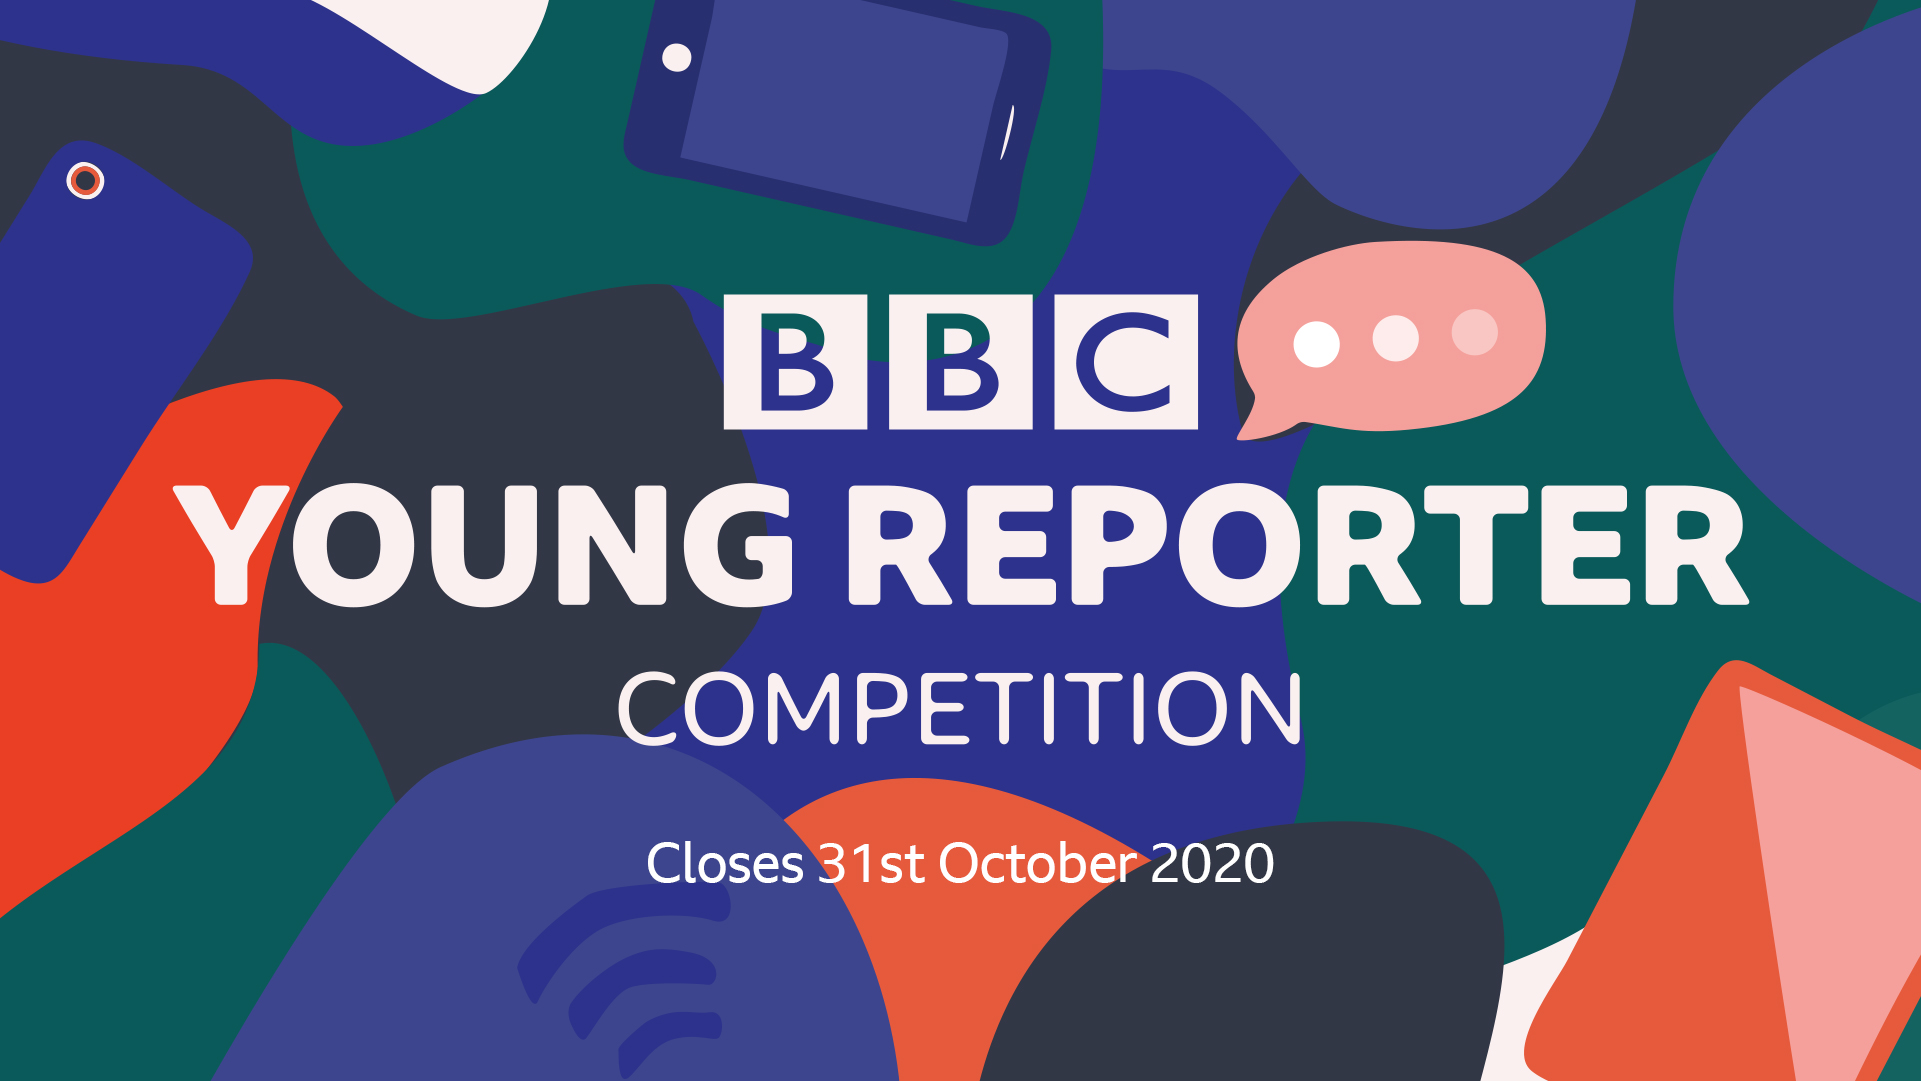 BBC Young Reporter competition logo